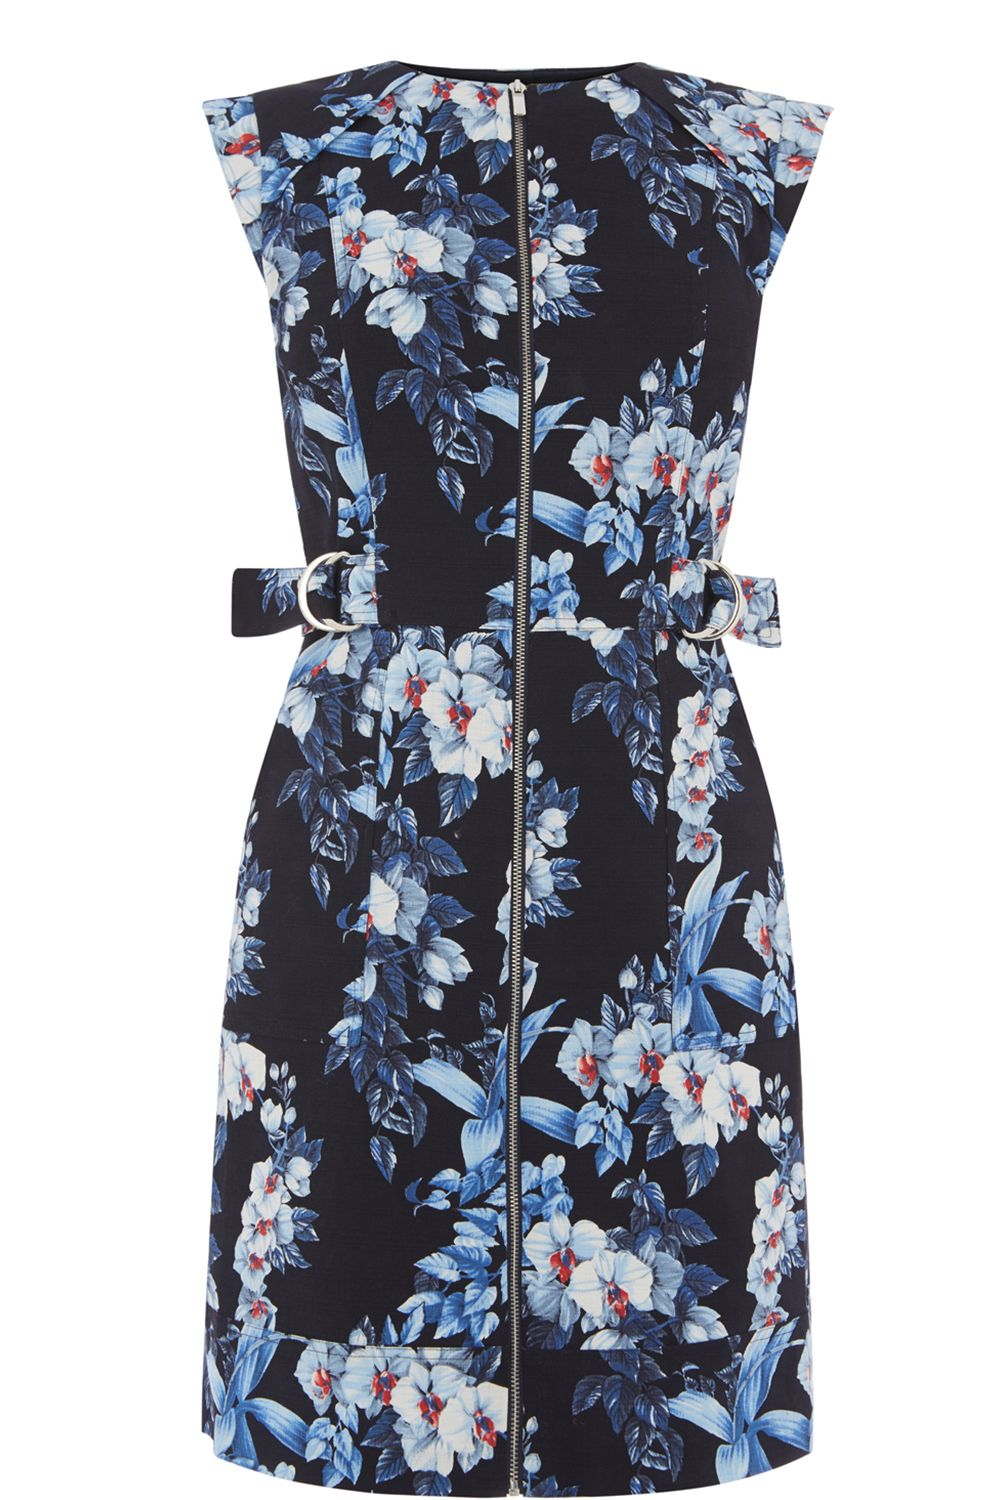 Oasis Tropical Orchid Shift Dress, Multi-Coloured